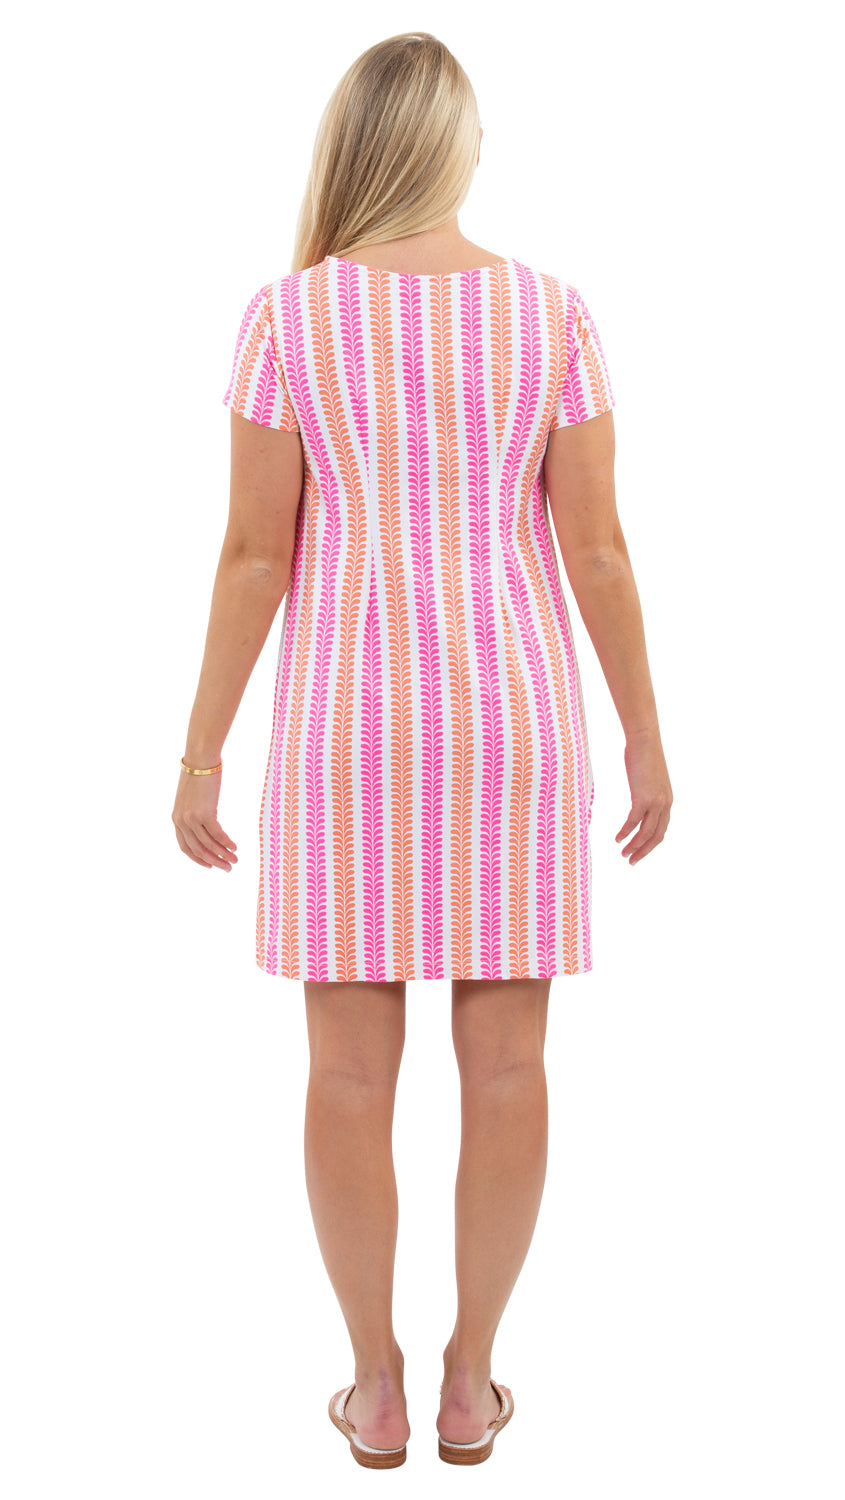 Marina Dress - Vertical Vines Coral/Pink